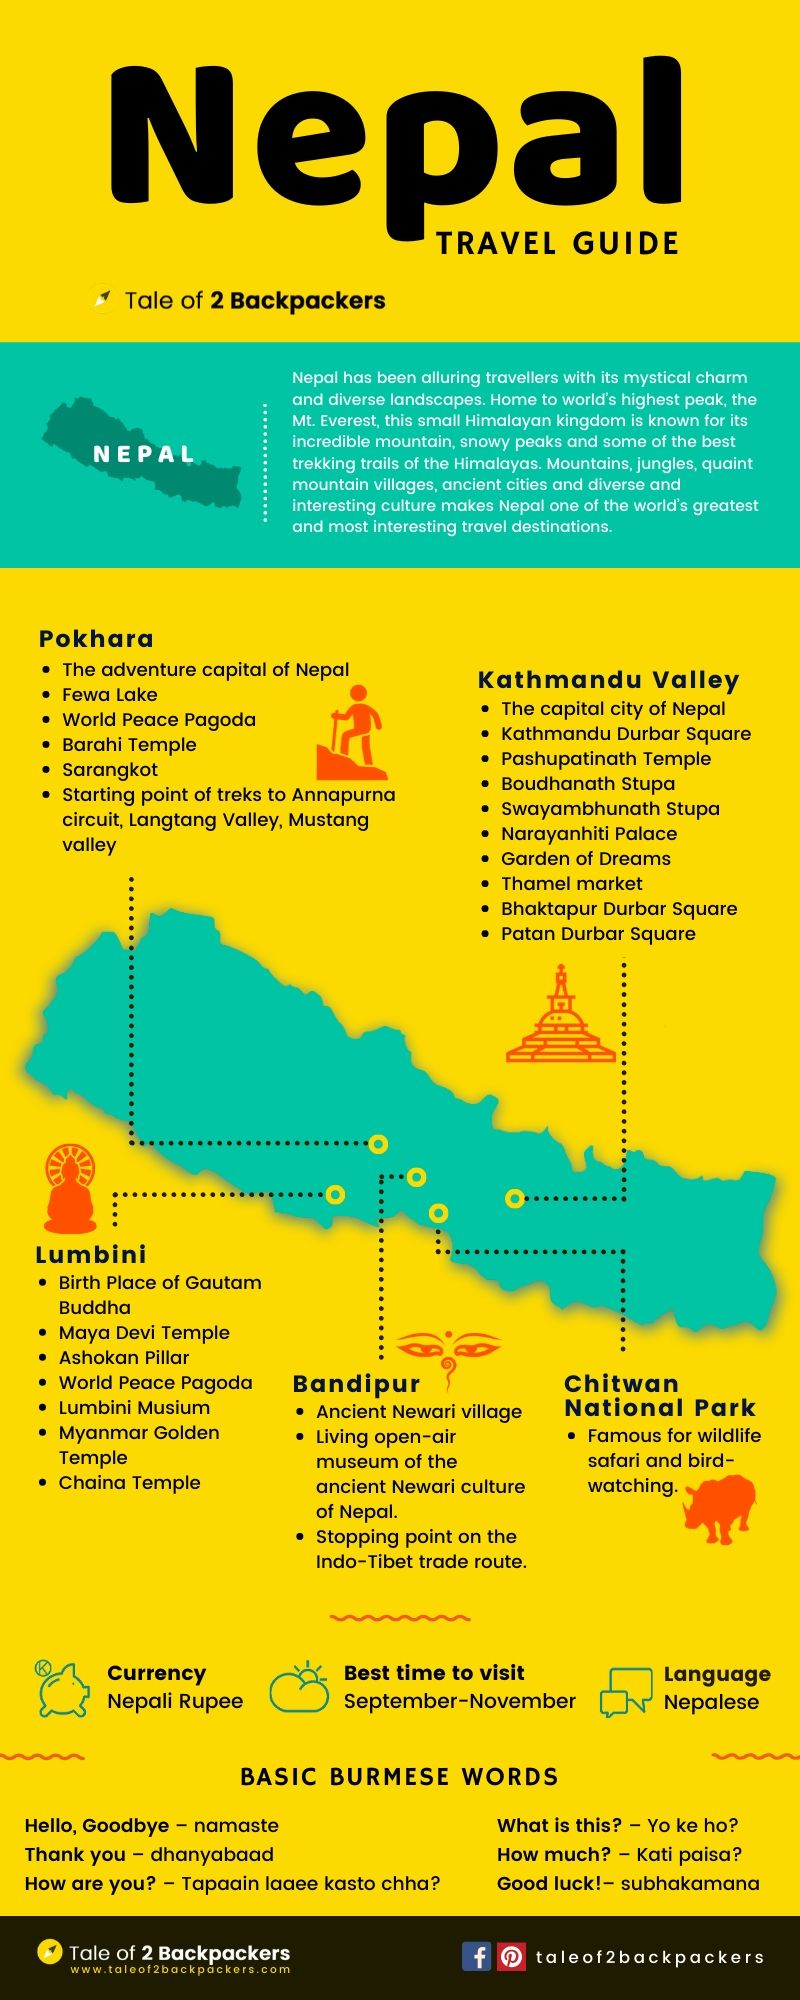 Nepal Travel Guide Infographic